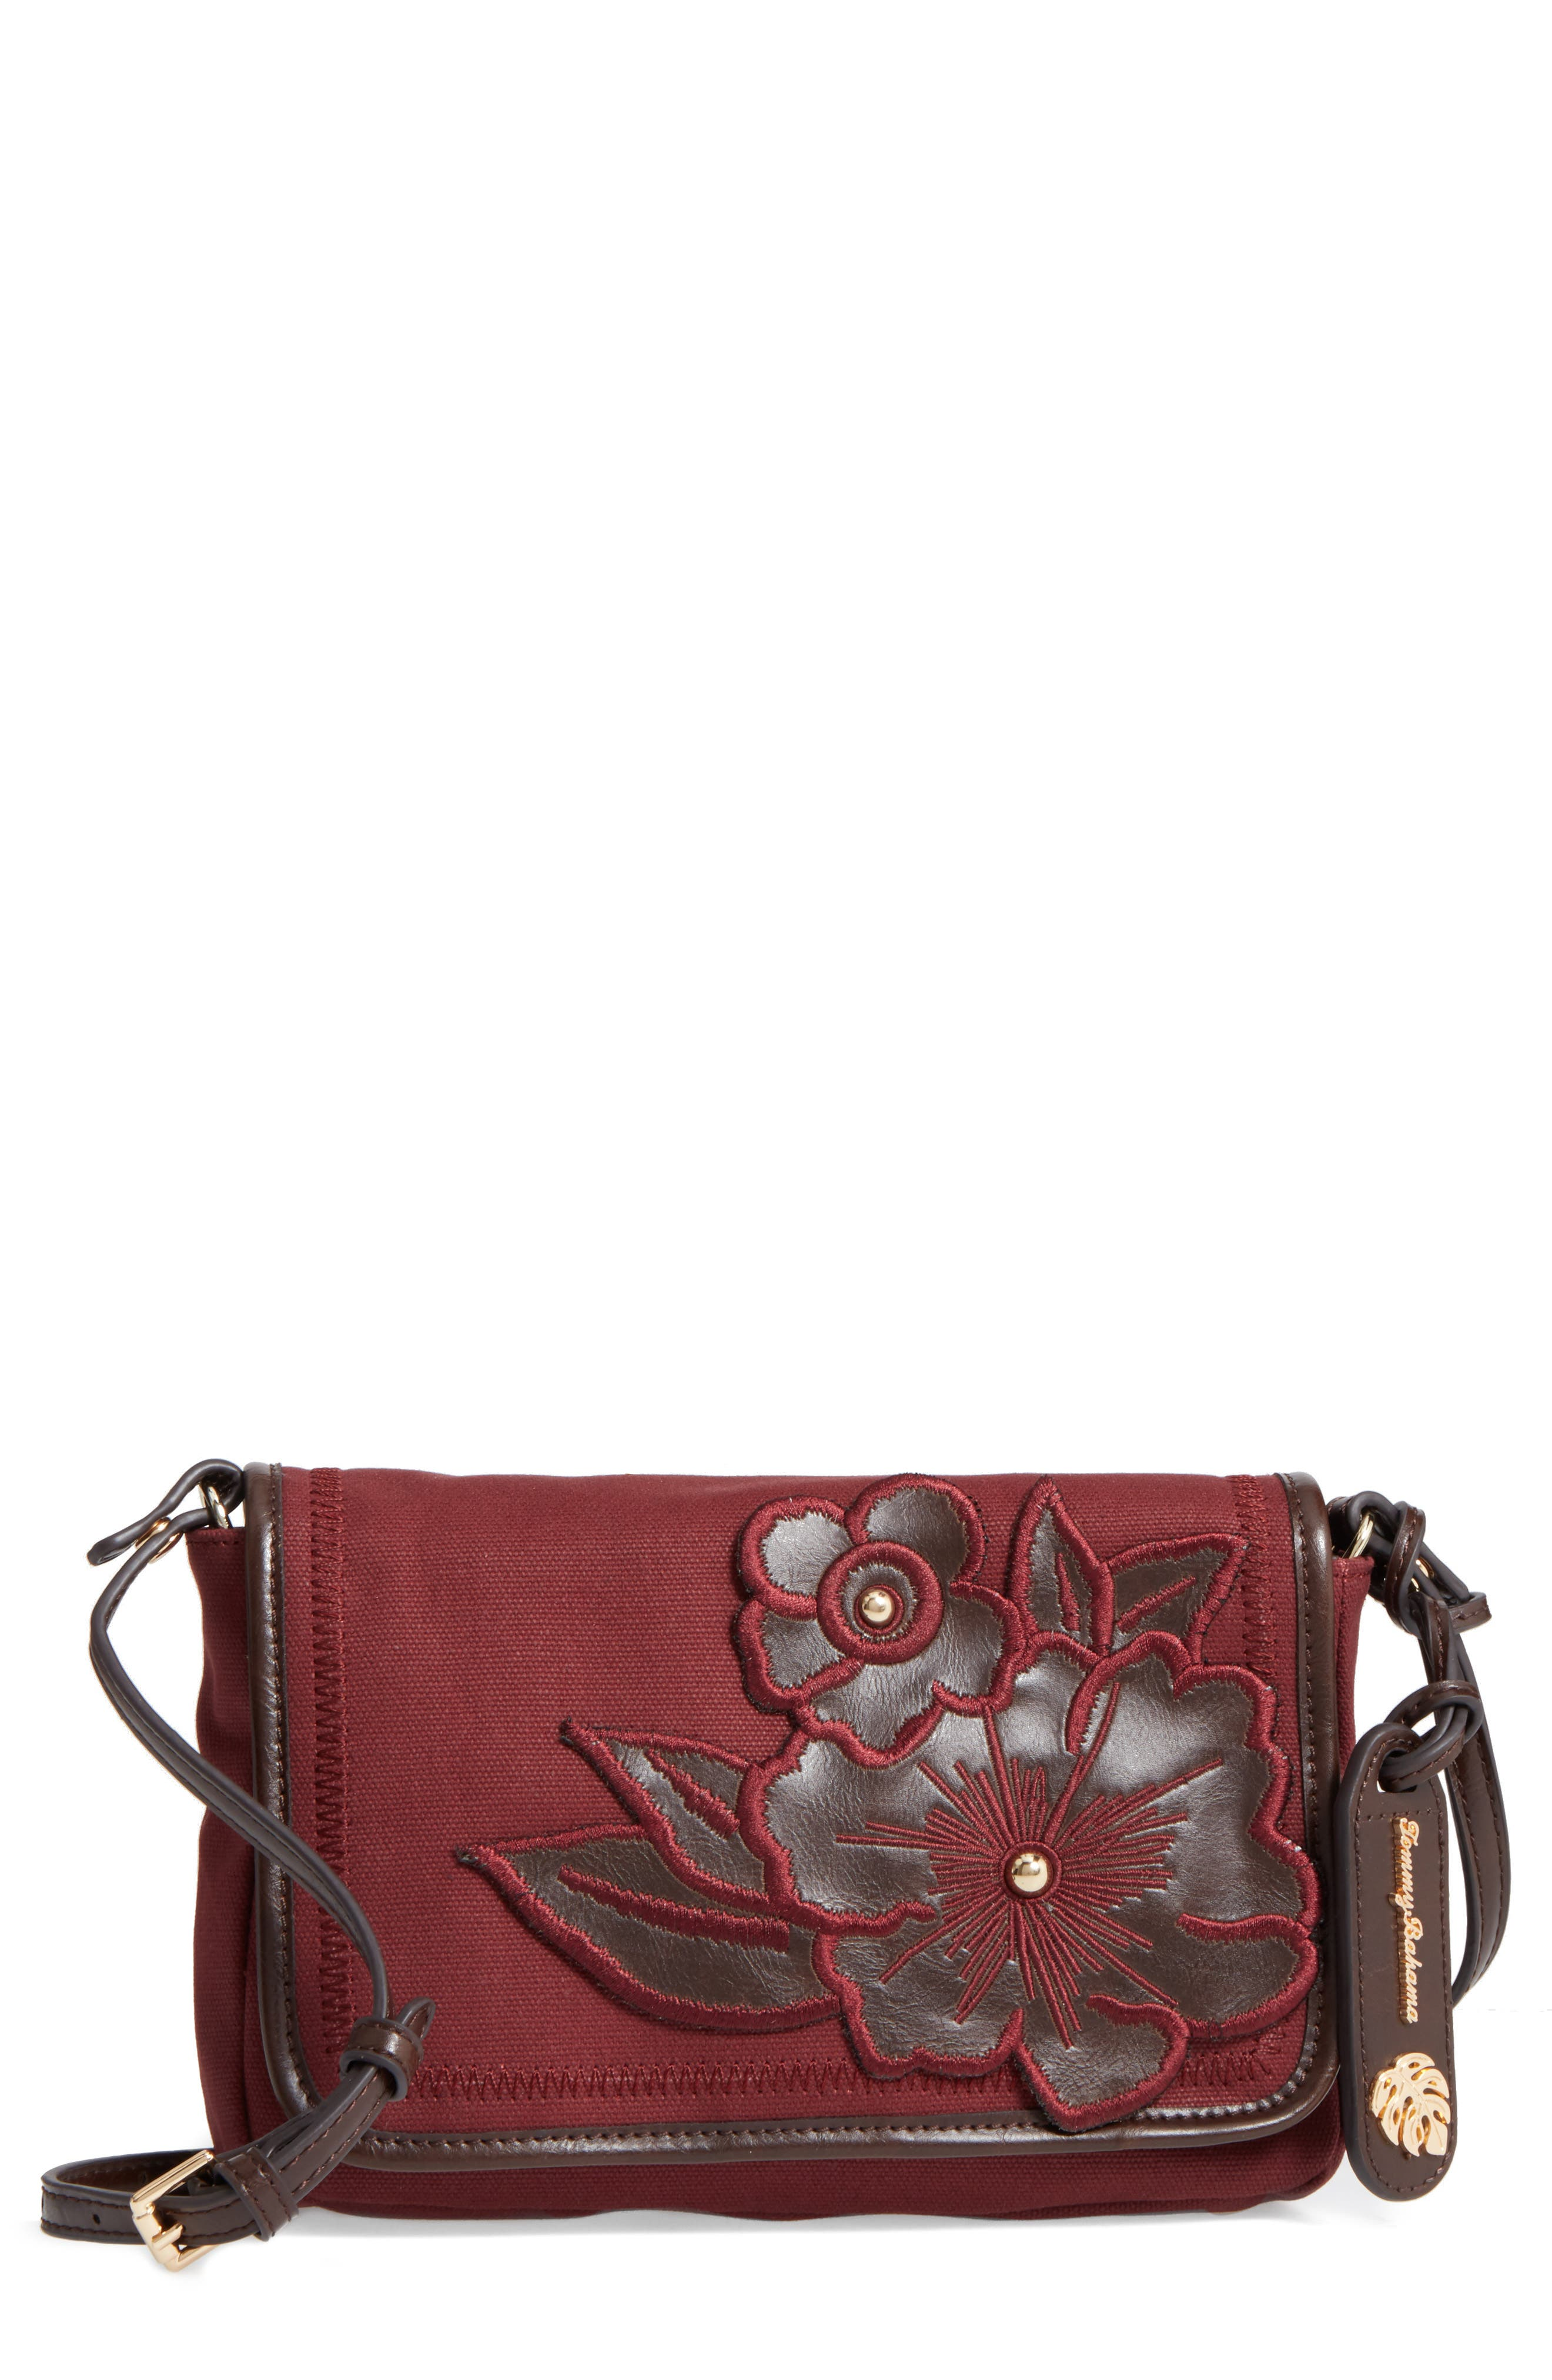 Alternate Image 1 Selected - Tommy Bahama Casbah Convertible Canvas Crossbody Bag